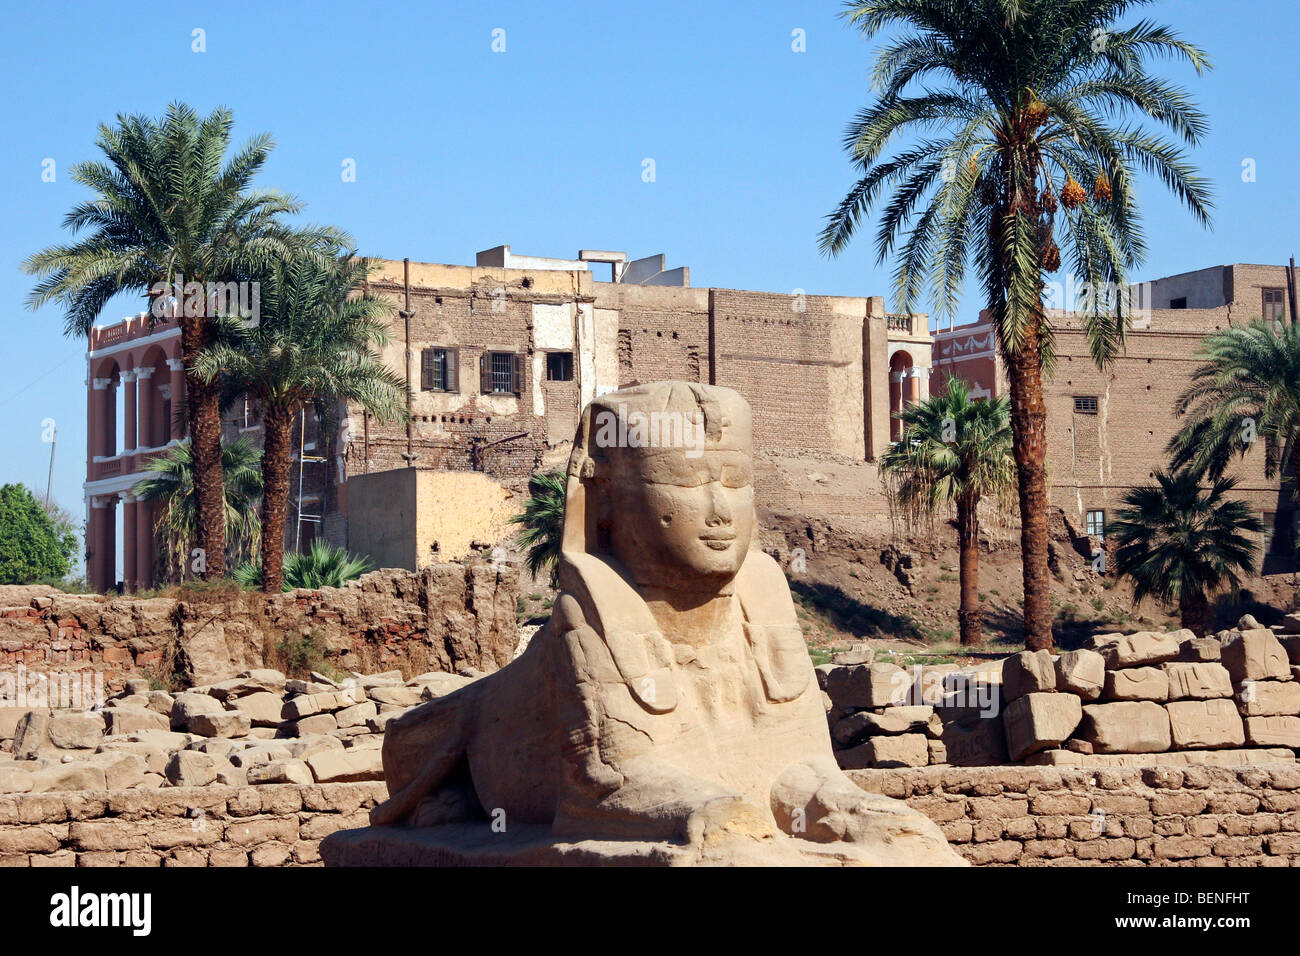 Sphinx of the Luxor Temple and new buildings, Egypt, North Africa - Stock Image